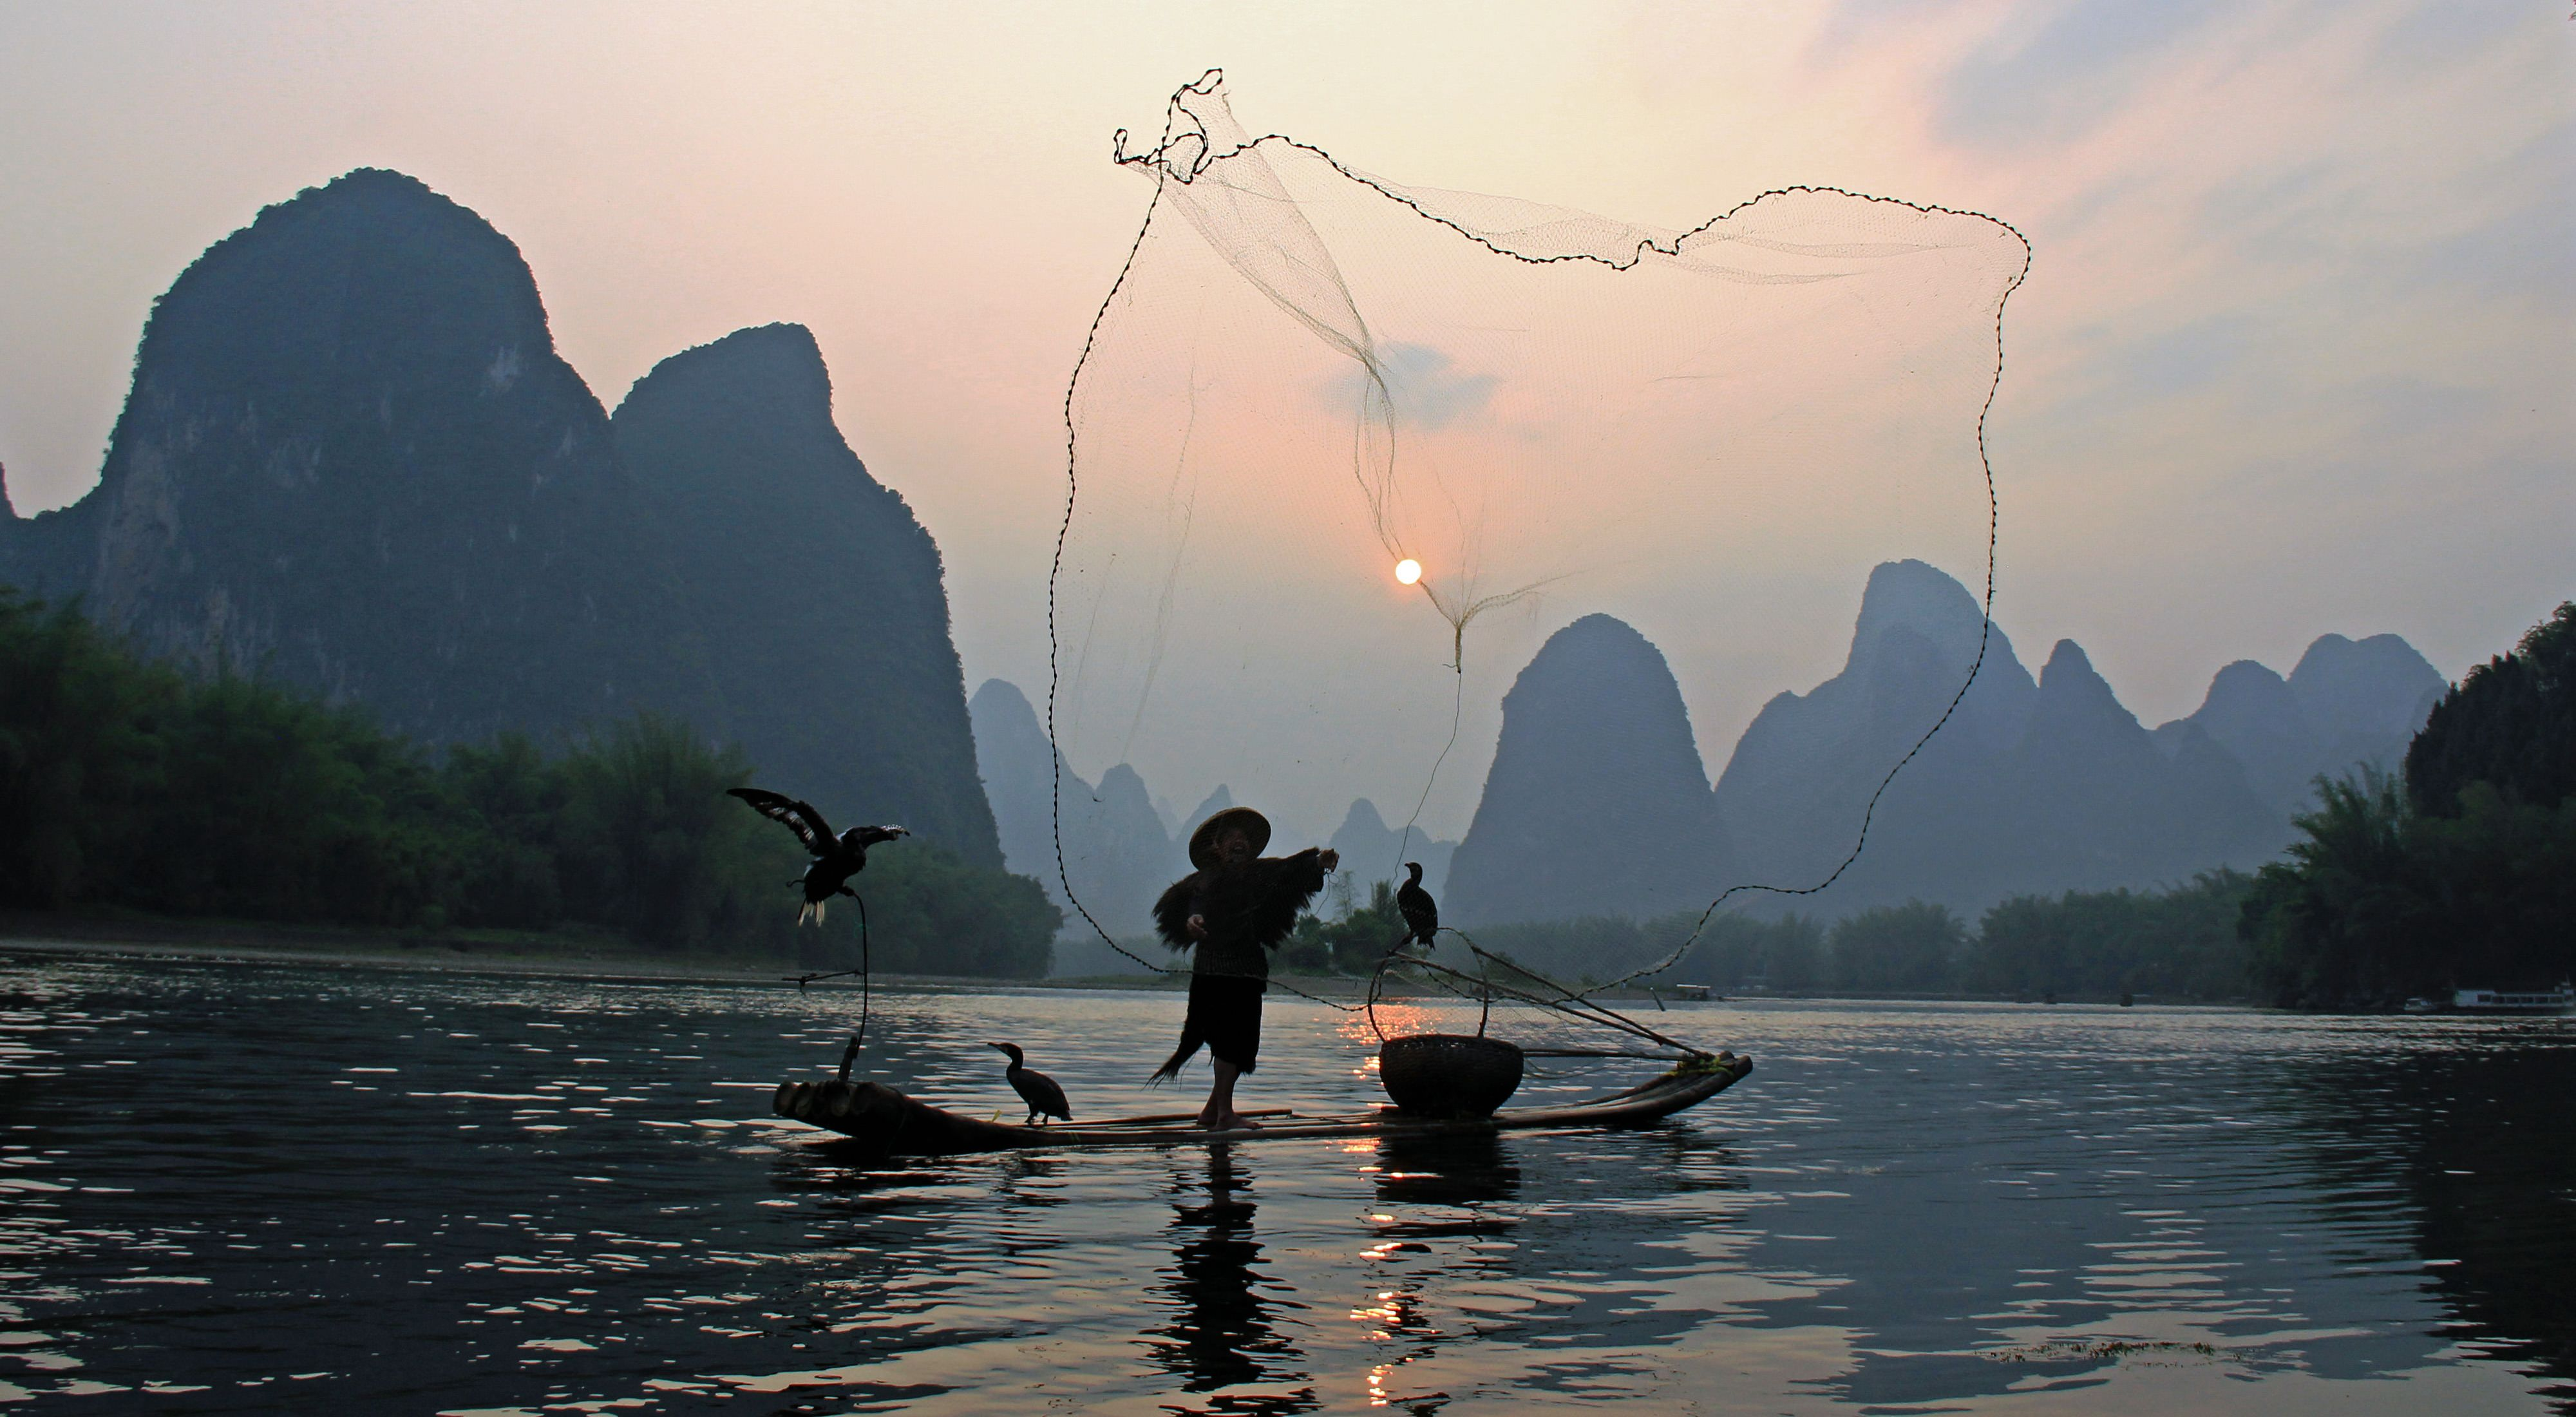 on the Li River during a misty, cloudy evening in Guangxi, China.